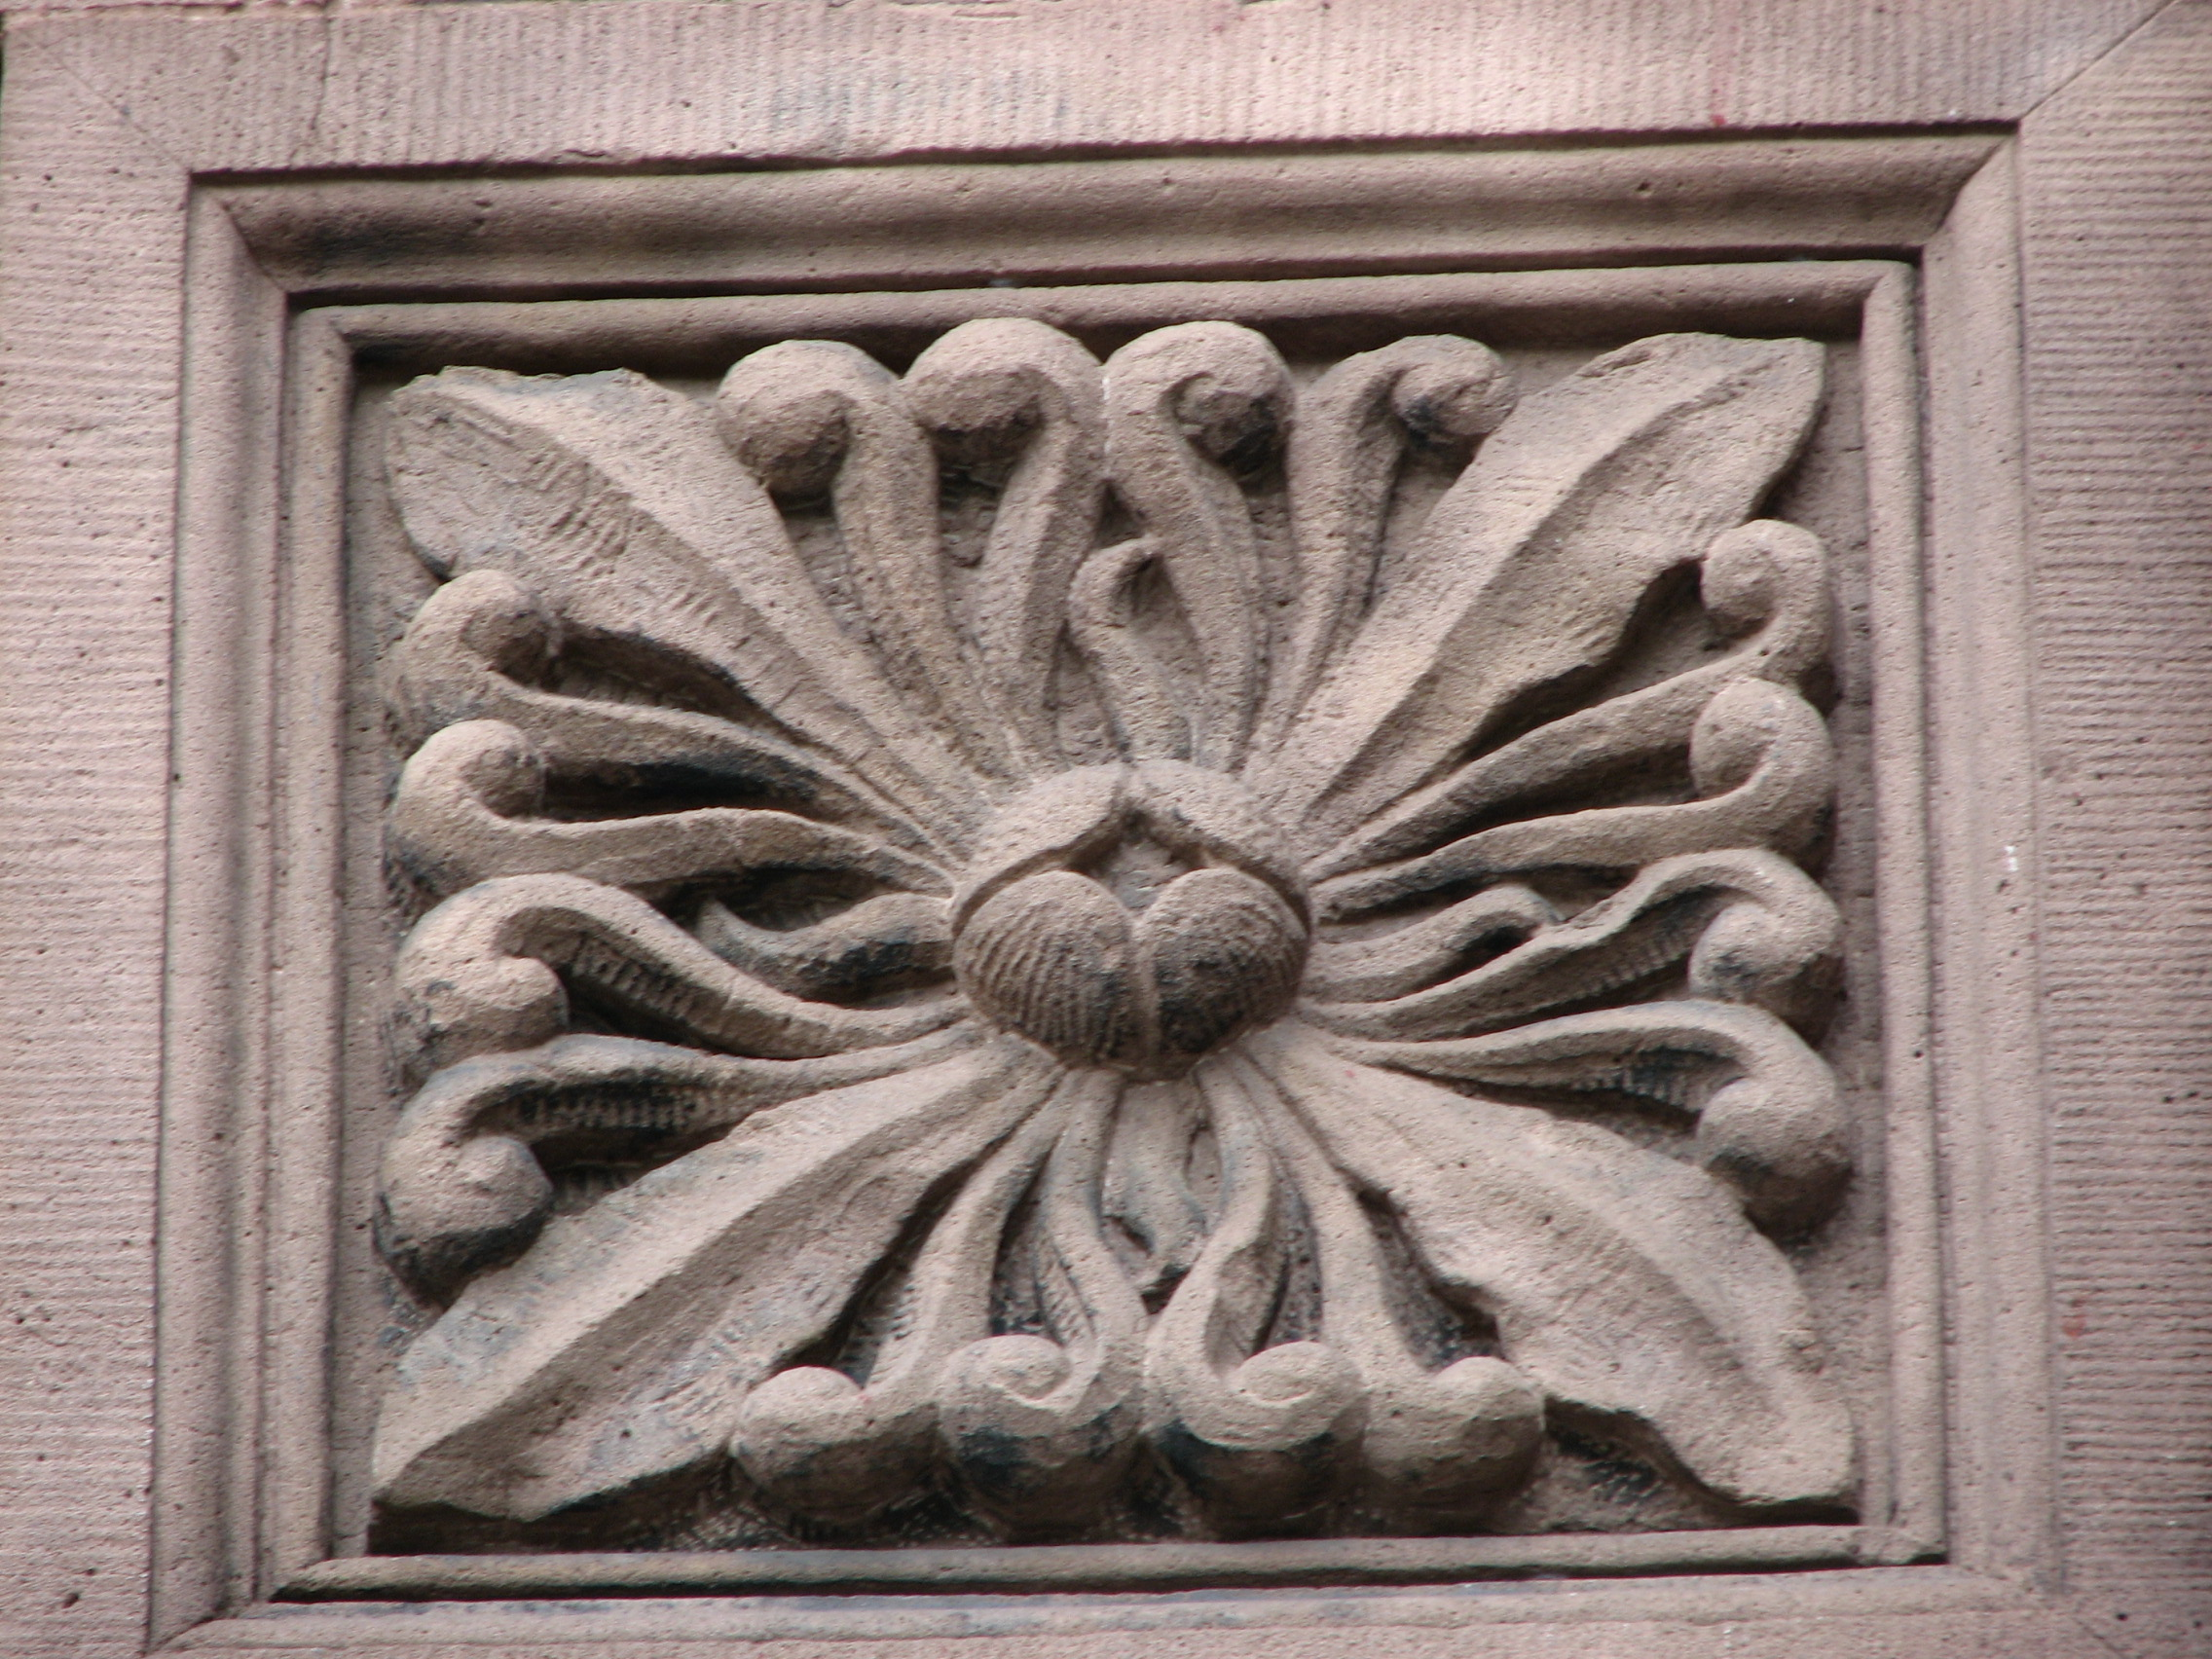 Floral designs are echoed throughout the design of the late19th century building.